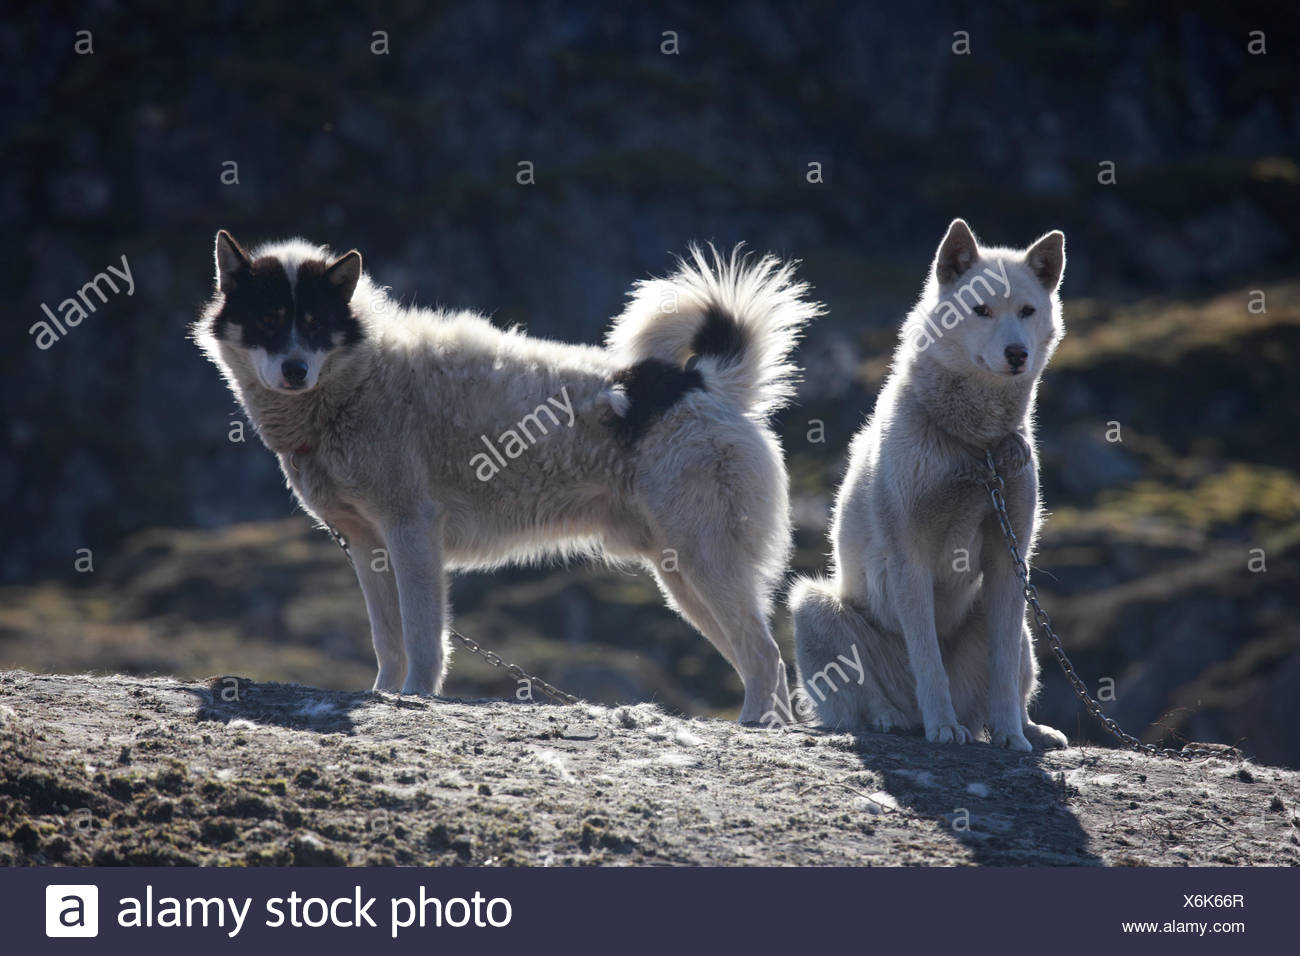 Greenland, Sisimiut, sled dogs, huskies, two, Western Greenland, rocks, animals, dogs, benefit animals, catenas, chained, sunny, outside, deserted, keeping of pets, - Stock Image